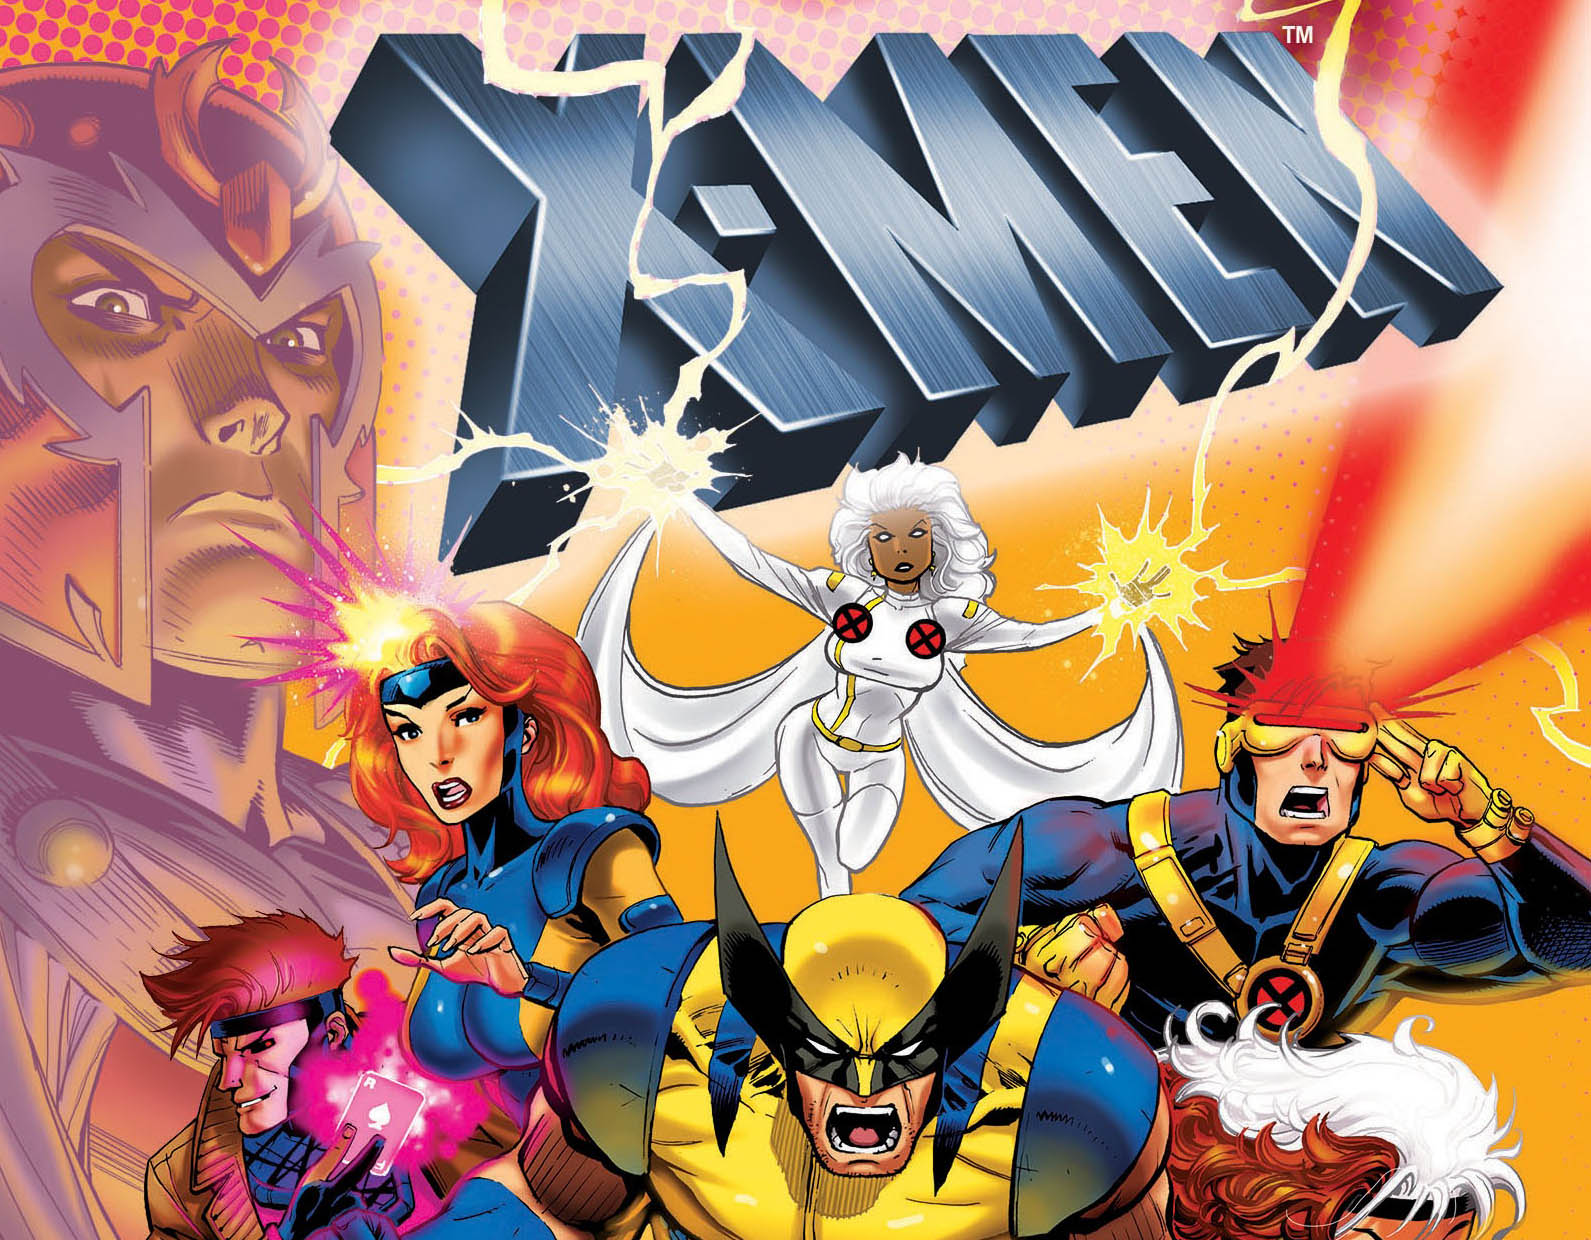 X-Men Animated (1992) and TV Sass